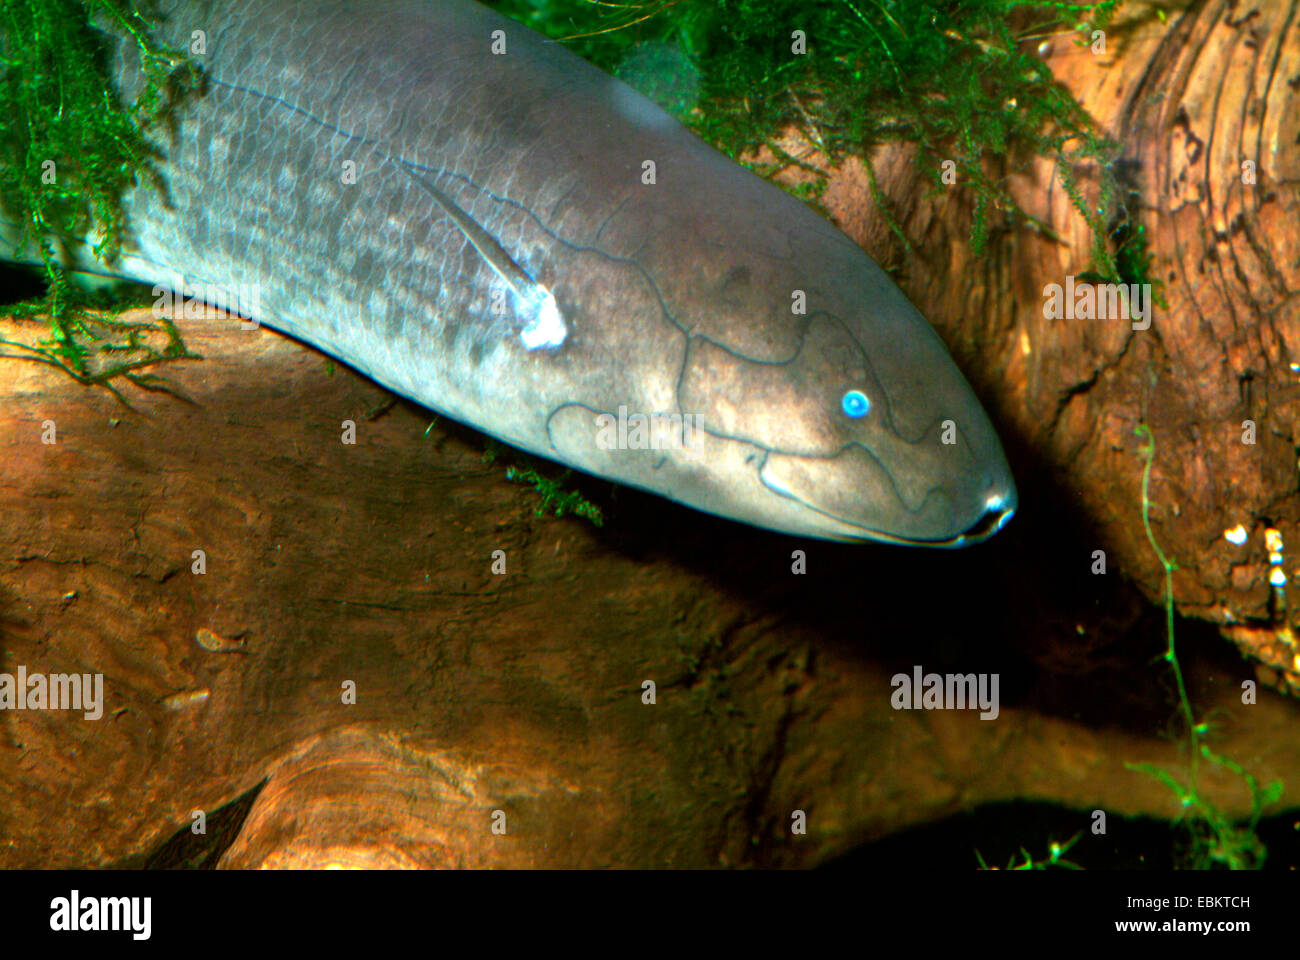 Spotted African lungfish, Doloi Lungfish (Protopterus dolloi), half length portrait Stock Photo